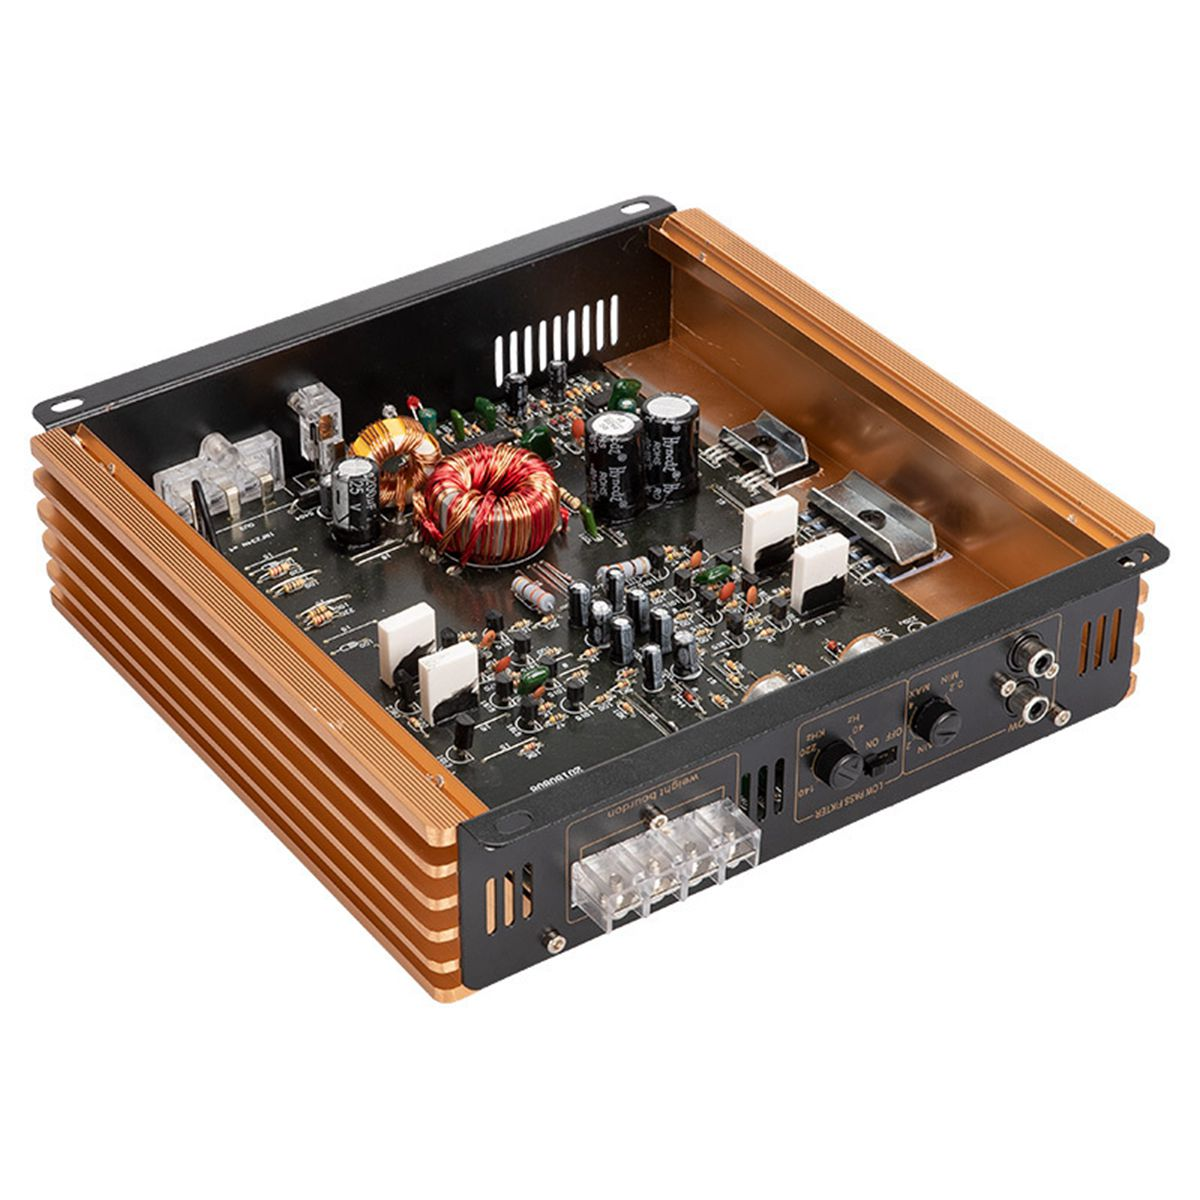 N338 2200W Car Stereo Audio Power Amplifier 2 Channel Class A/B Subwoofer Stereo Surround